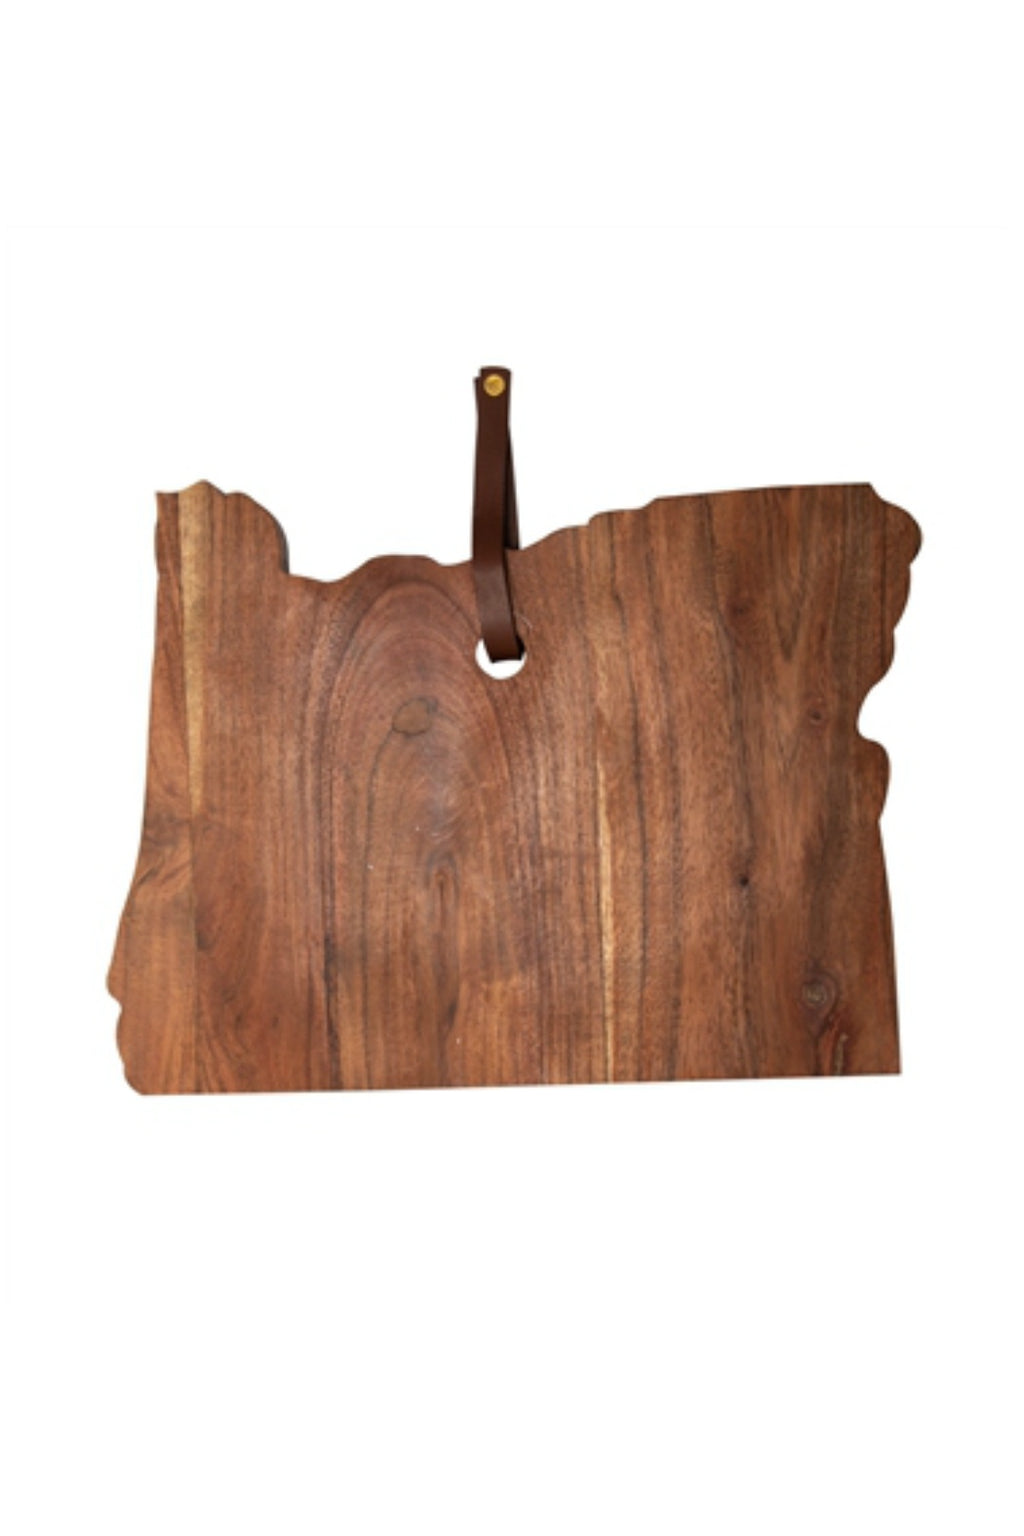 BIDK Home Oregon State Acacia Wood Cutting Board